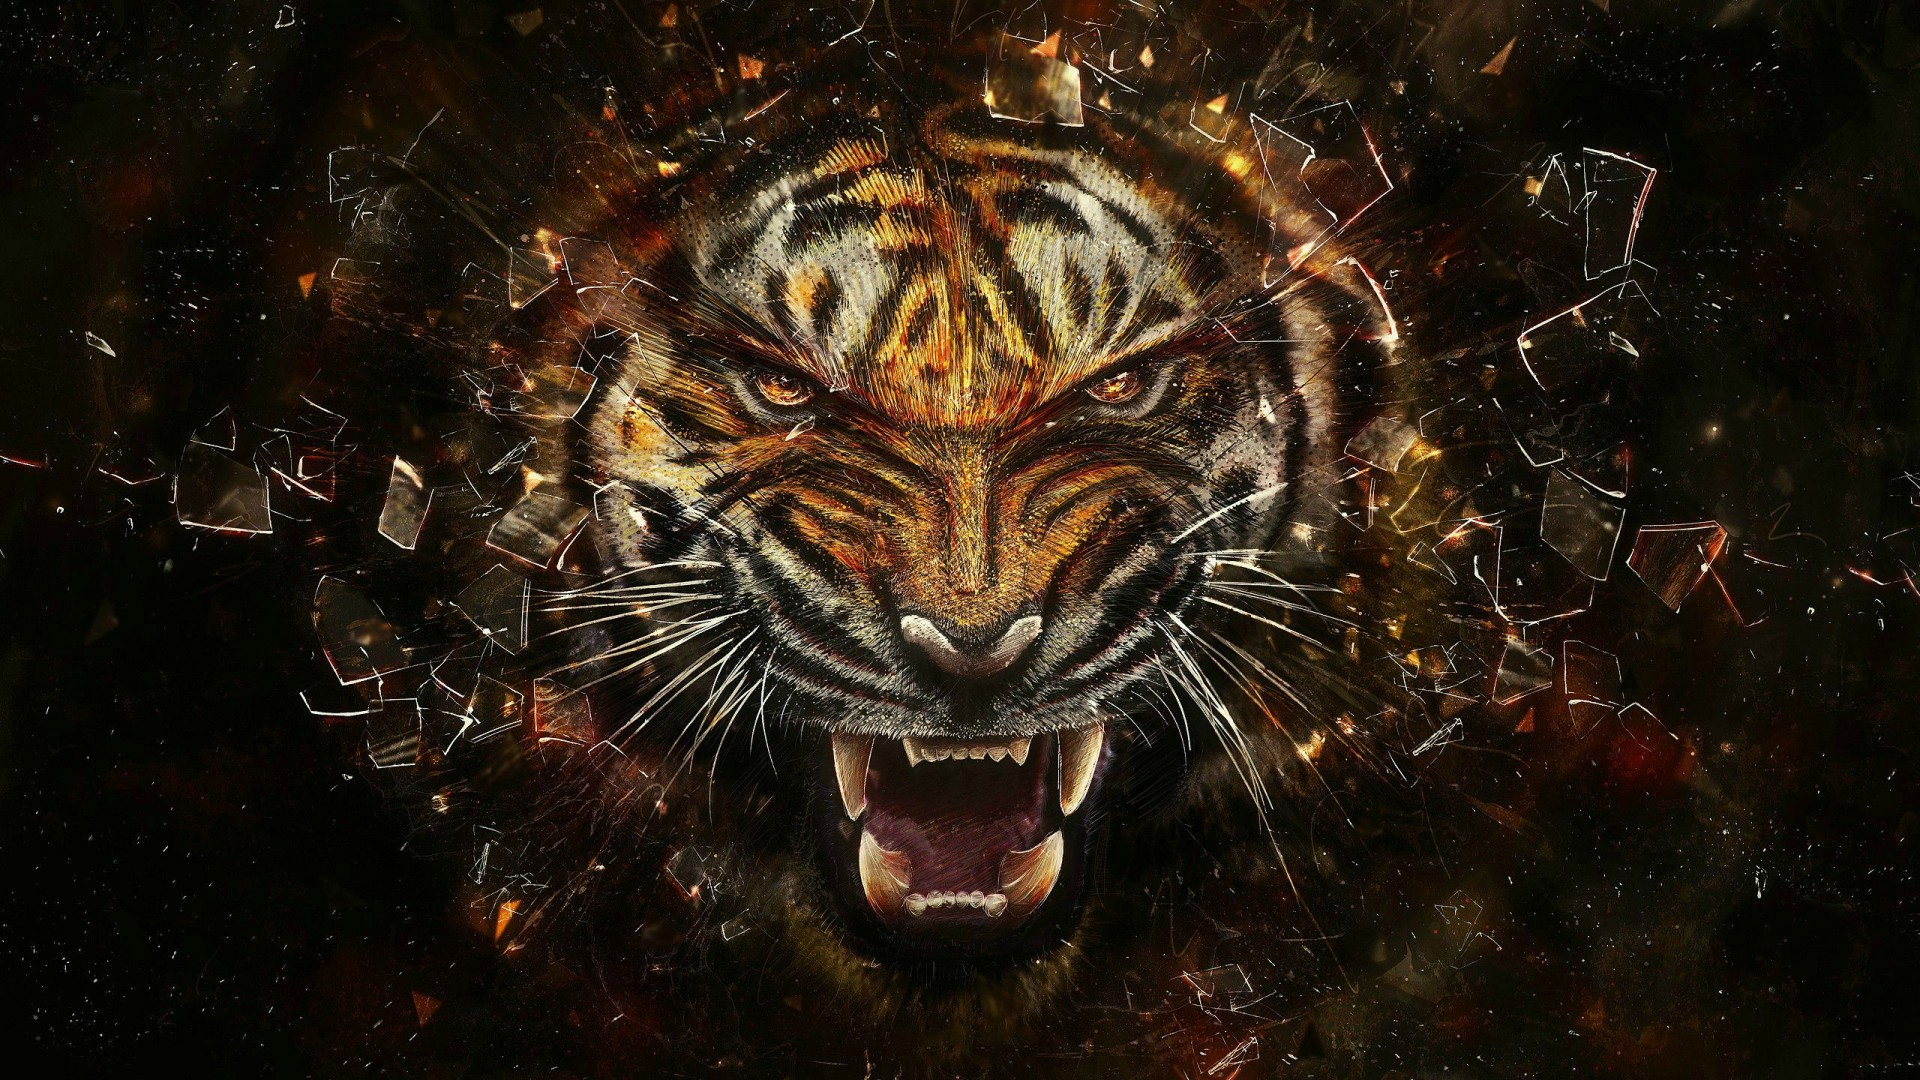 Tiger Hd Wallpaper Iphone 7 Plus Iphone 8 Plus Hd